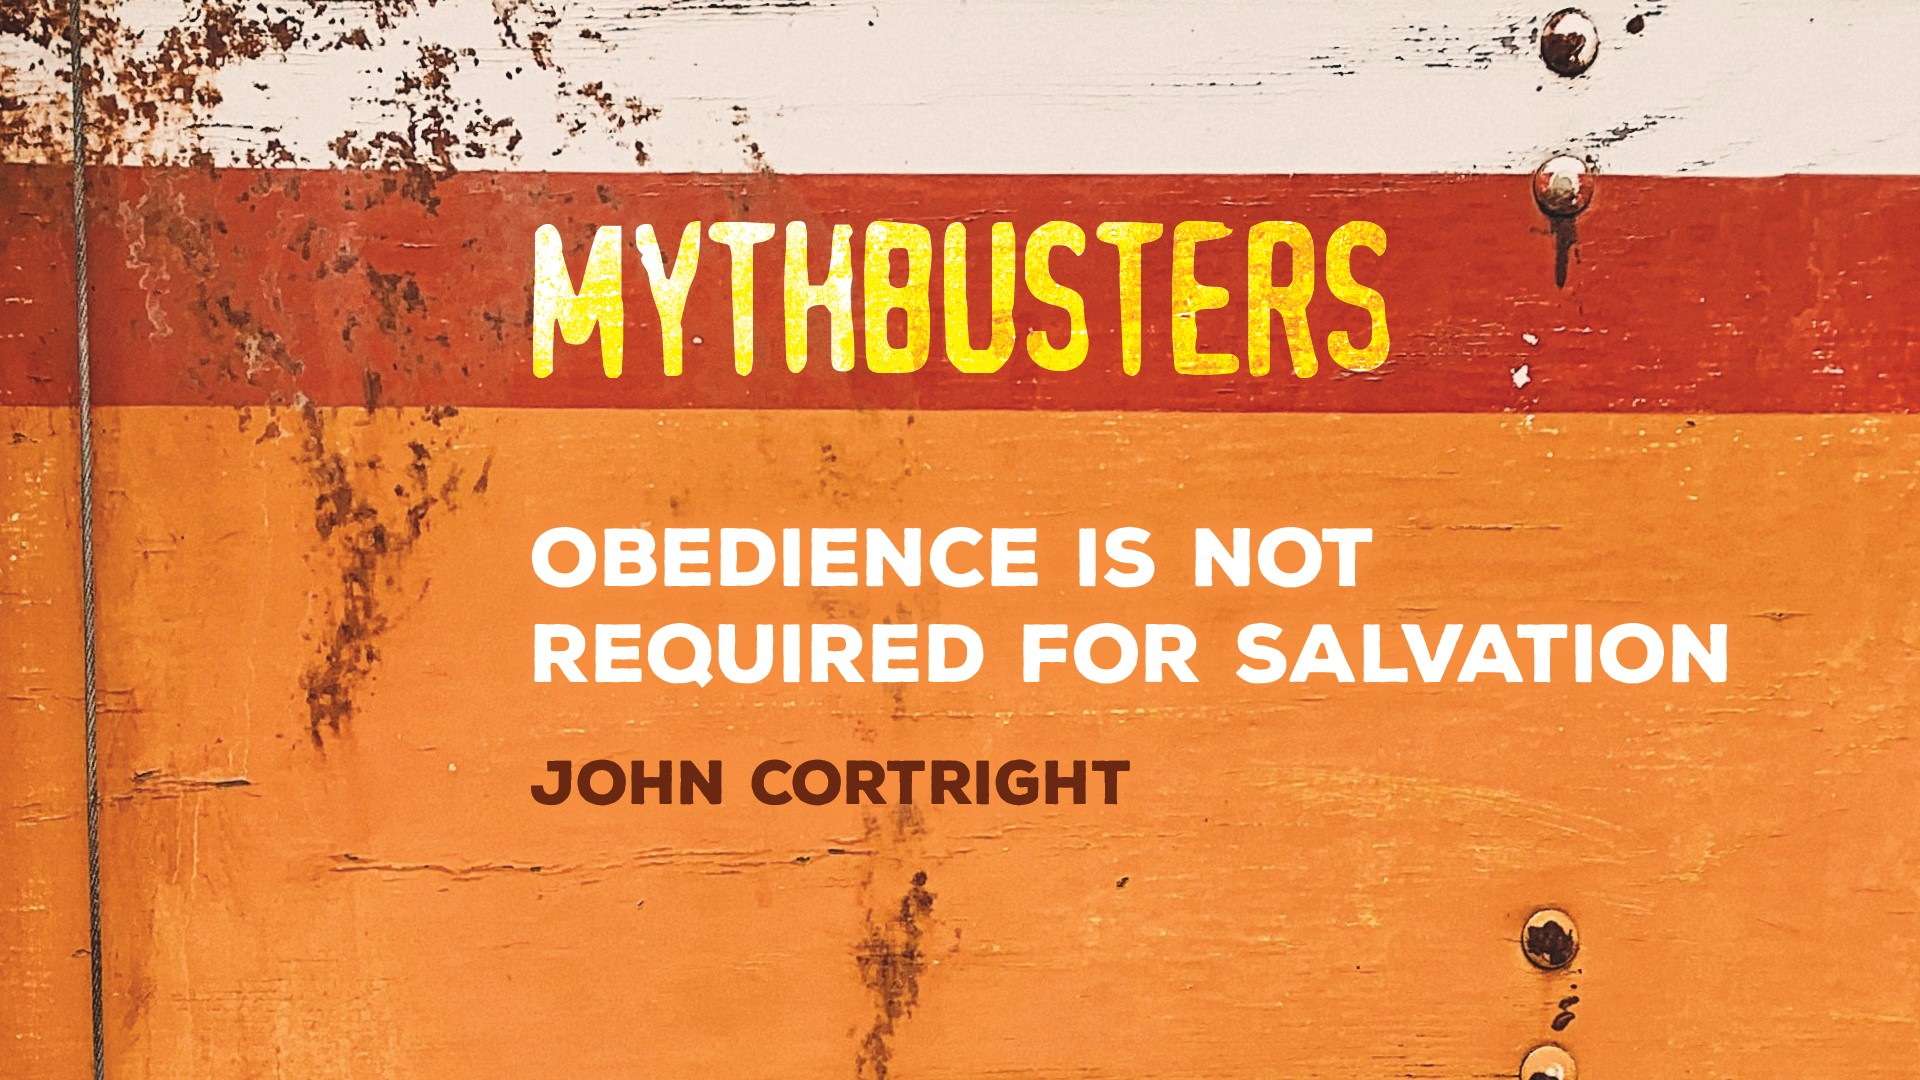 Obedience is Not Required for Salvation